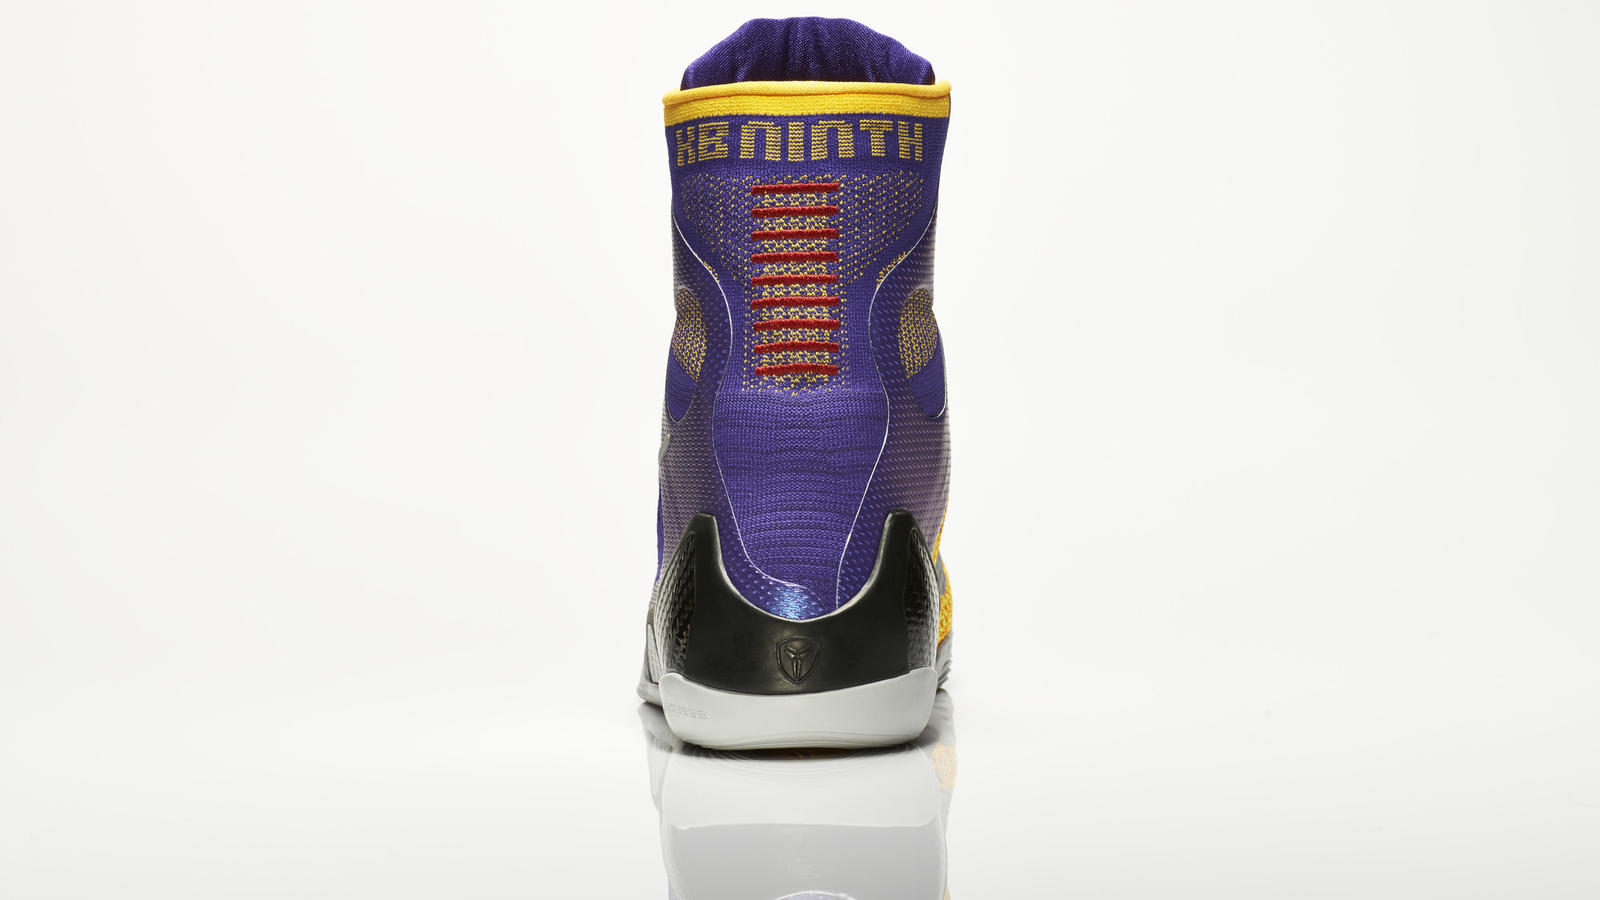 su14_bb_kobe9_elite_630847_500_return_back_0139